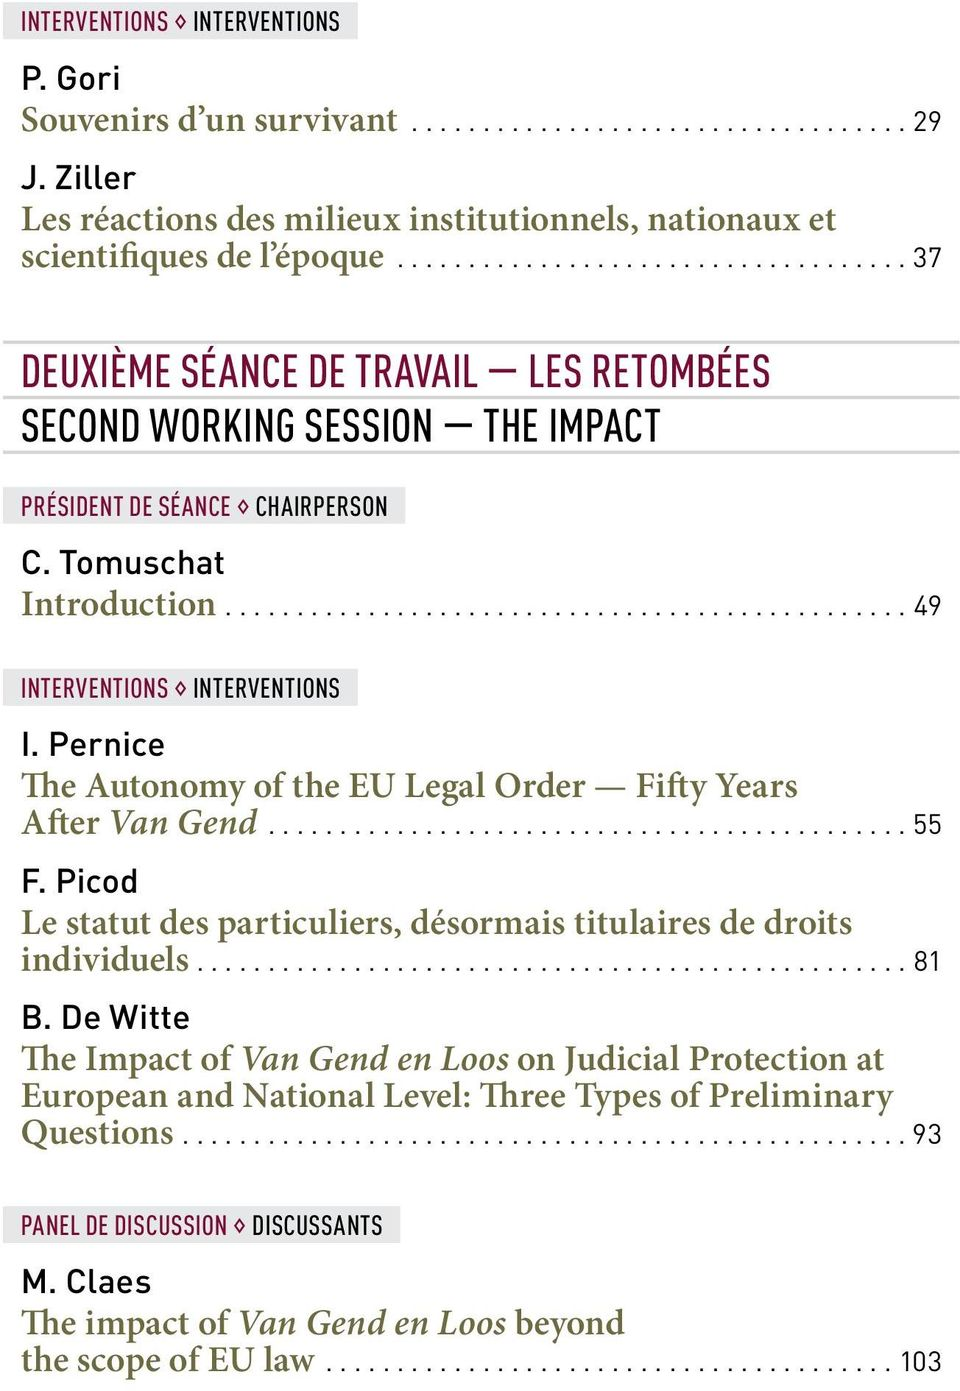 Pernice The Autonomy of the EU Legal Order Fifty Years After Van Gend...55 F. Picod Le statut des particuliers, désormais titulaires de droits individuels...81 B.